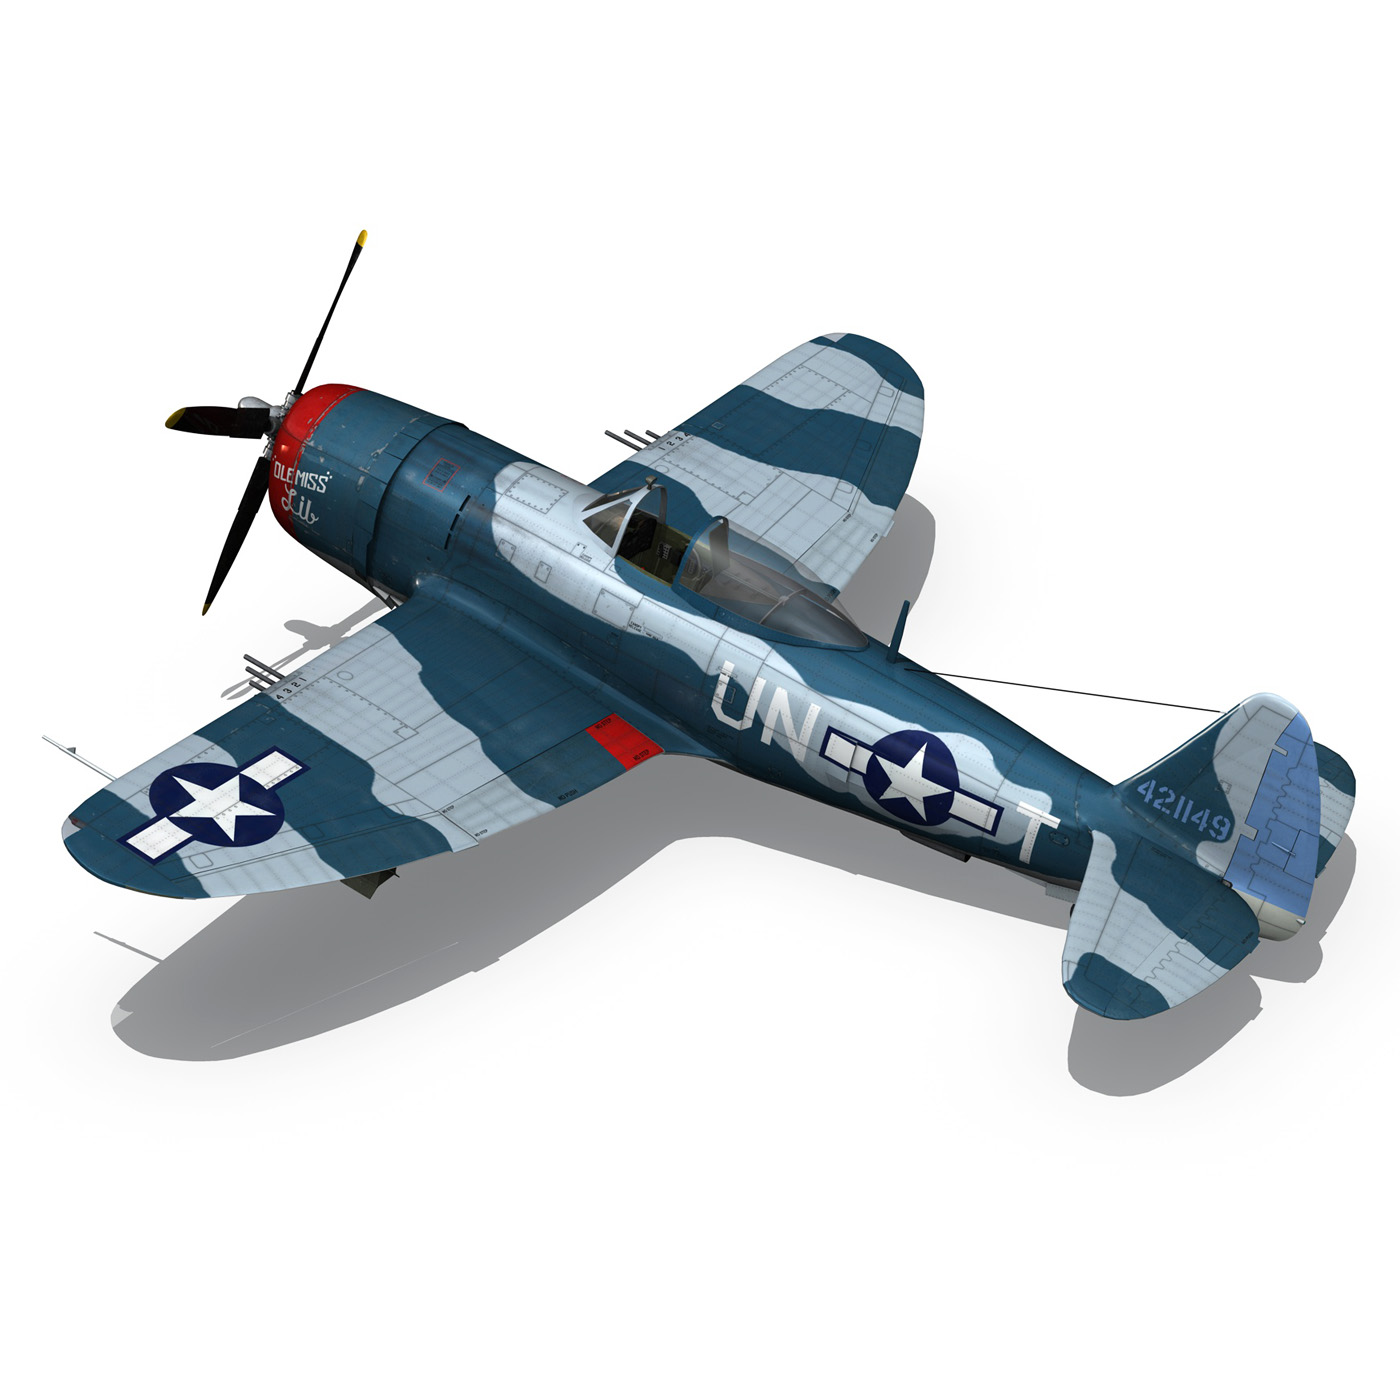 republic p-47 thunderbolt – ole miss lib 3d model fbx c4d lwo obj 274284